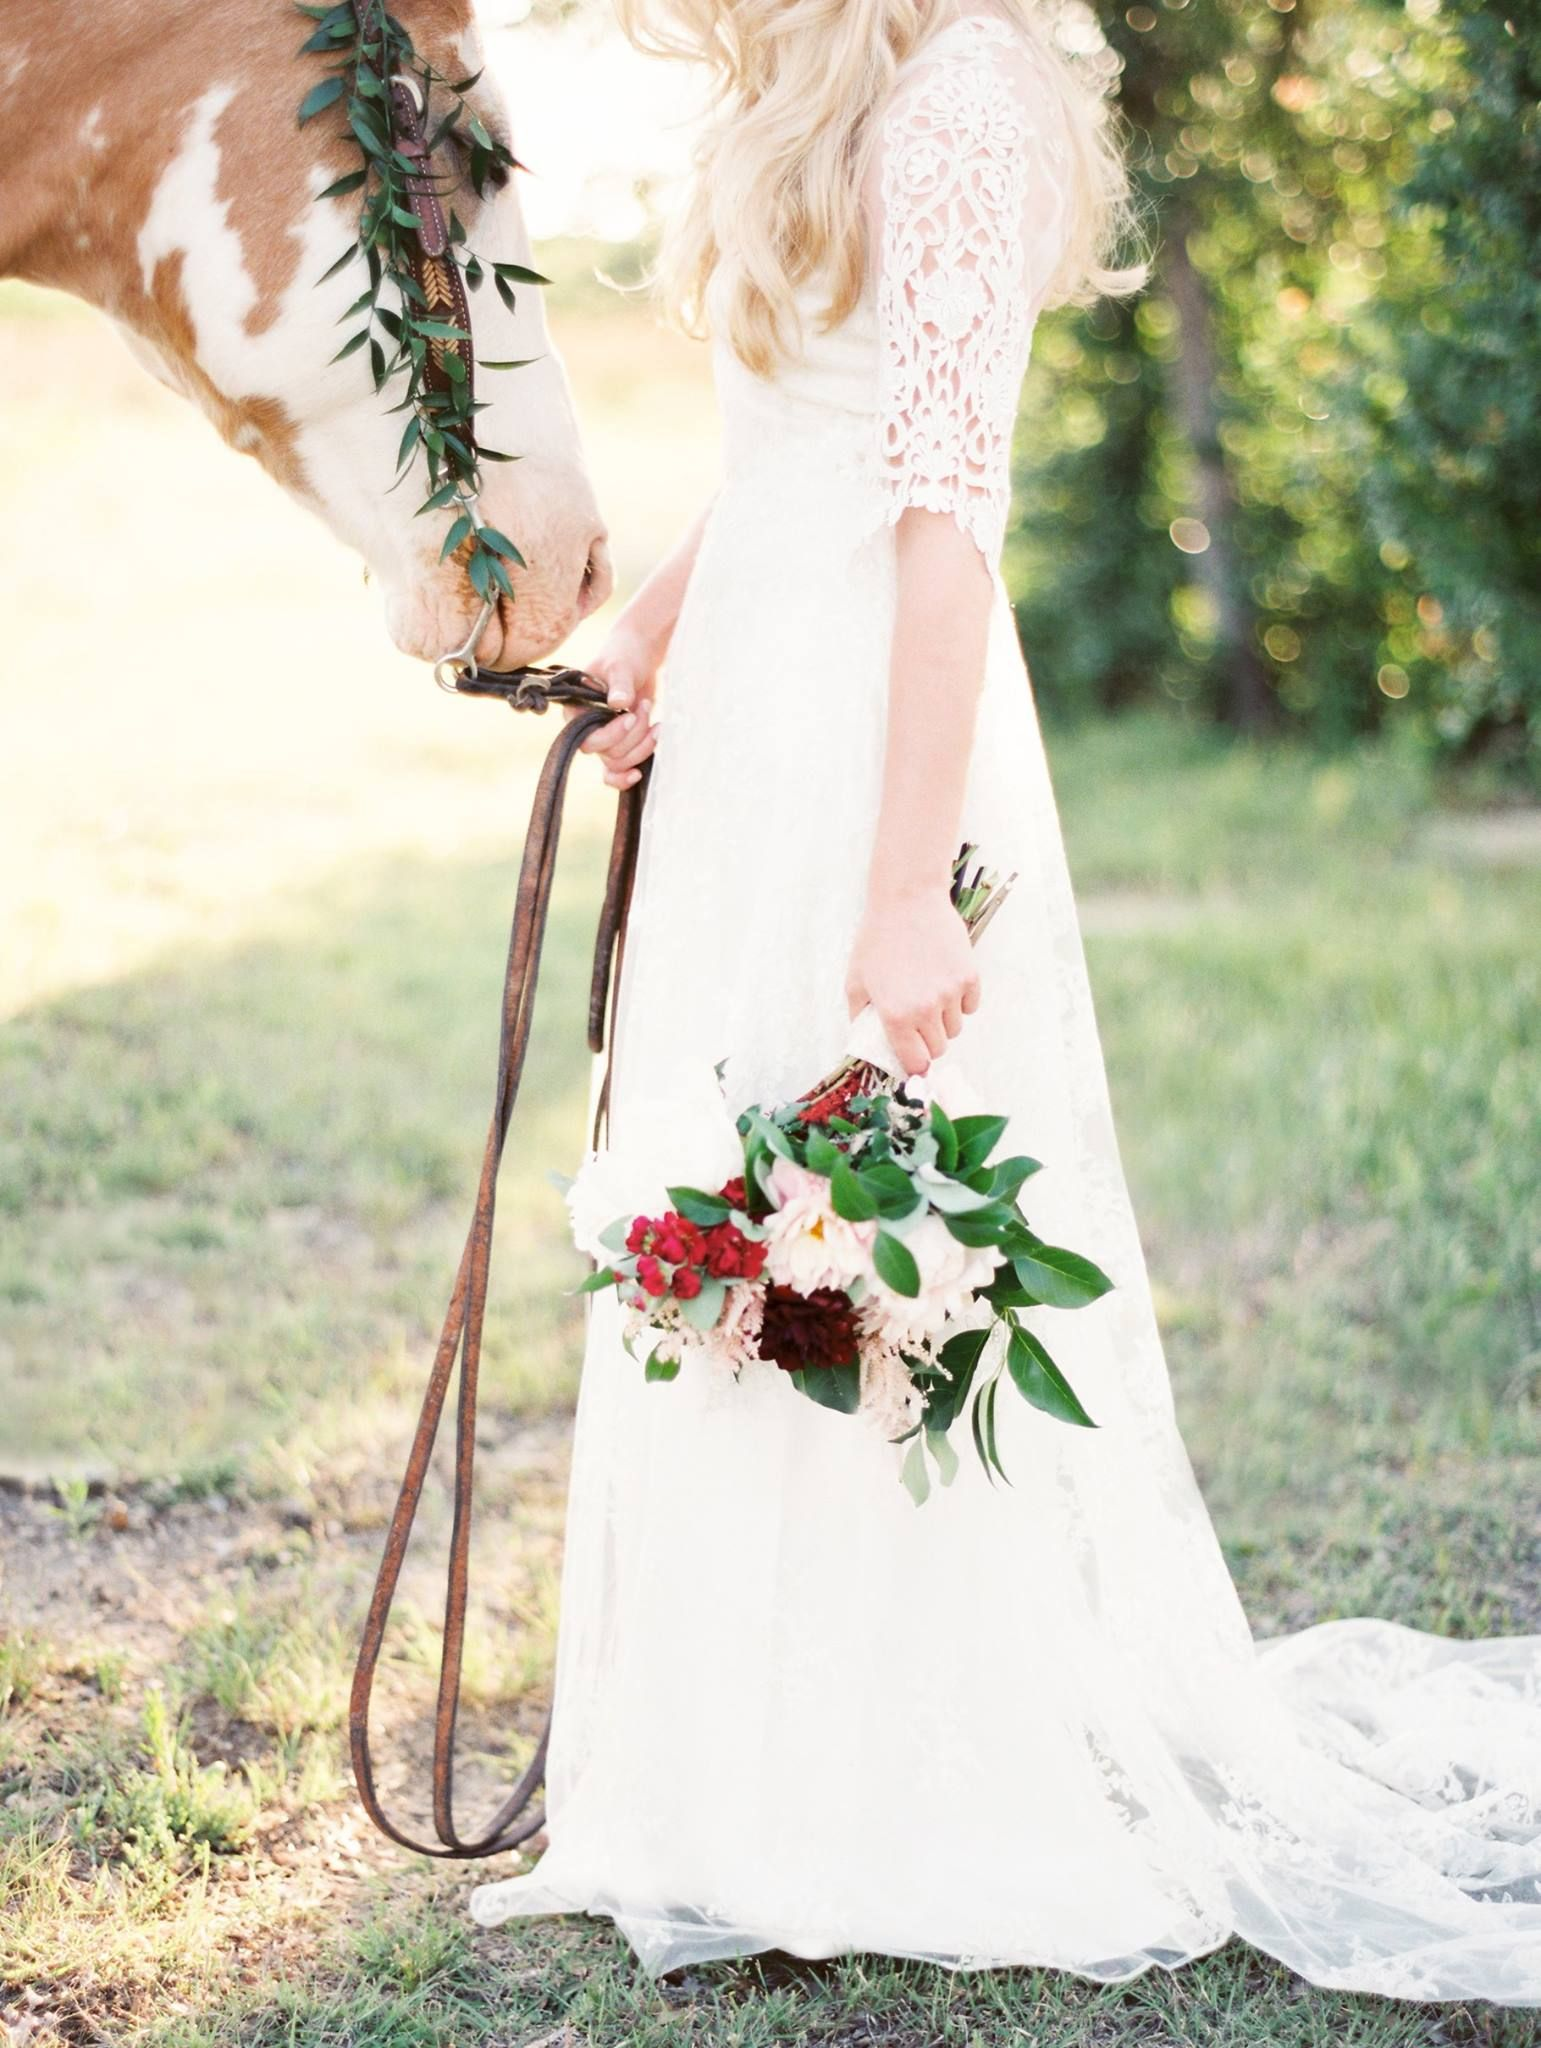 Horse with bride, country bride, Wedding theme inspiration